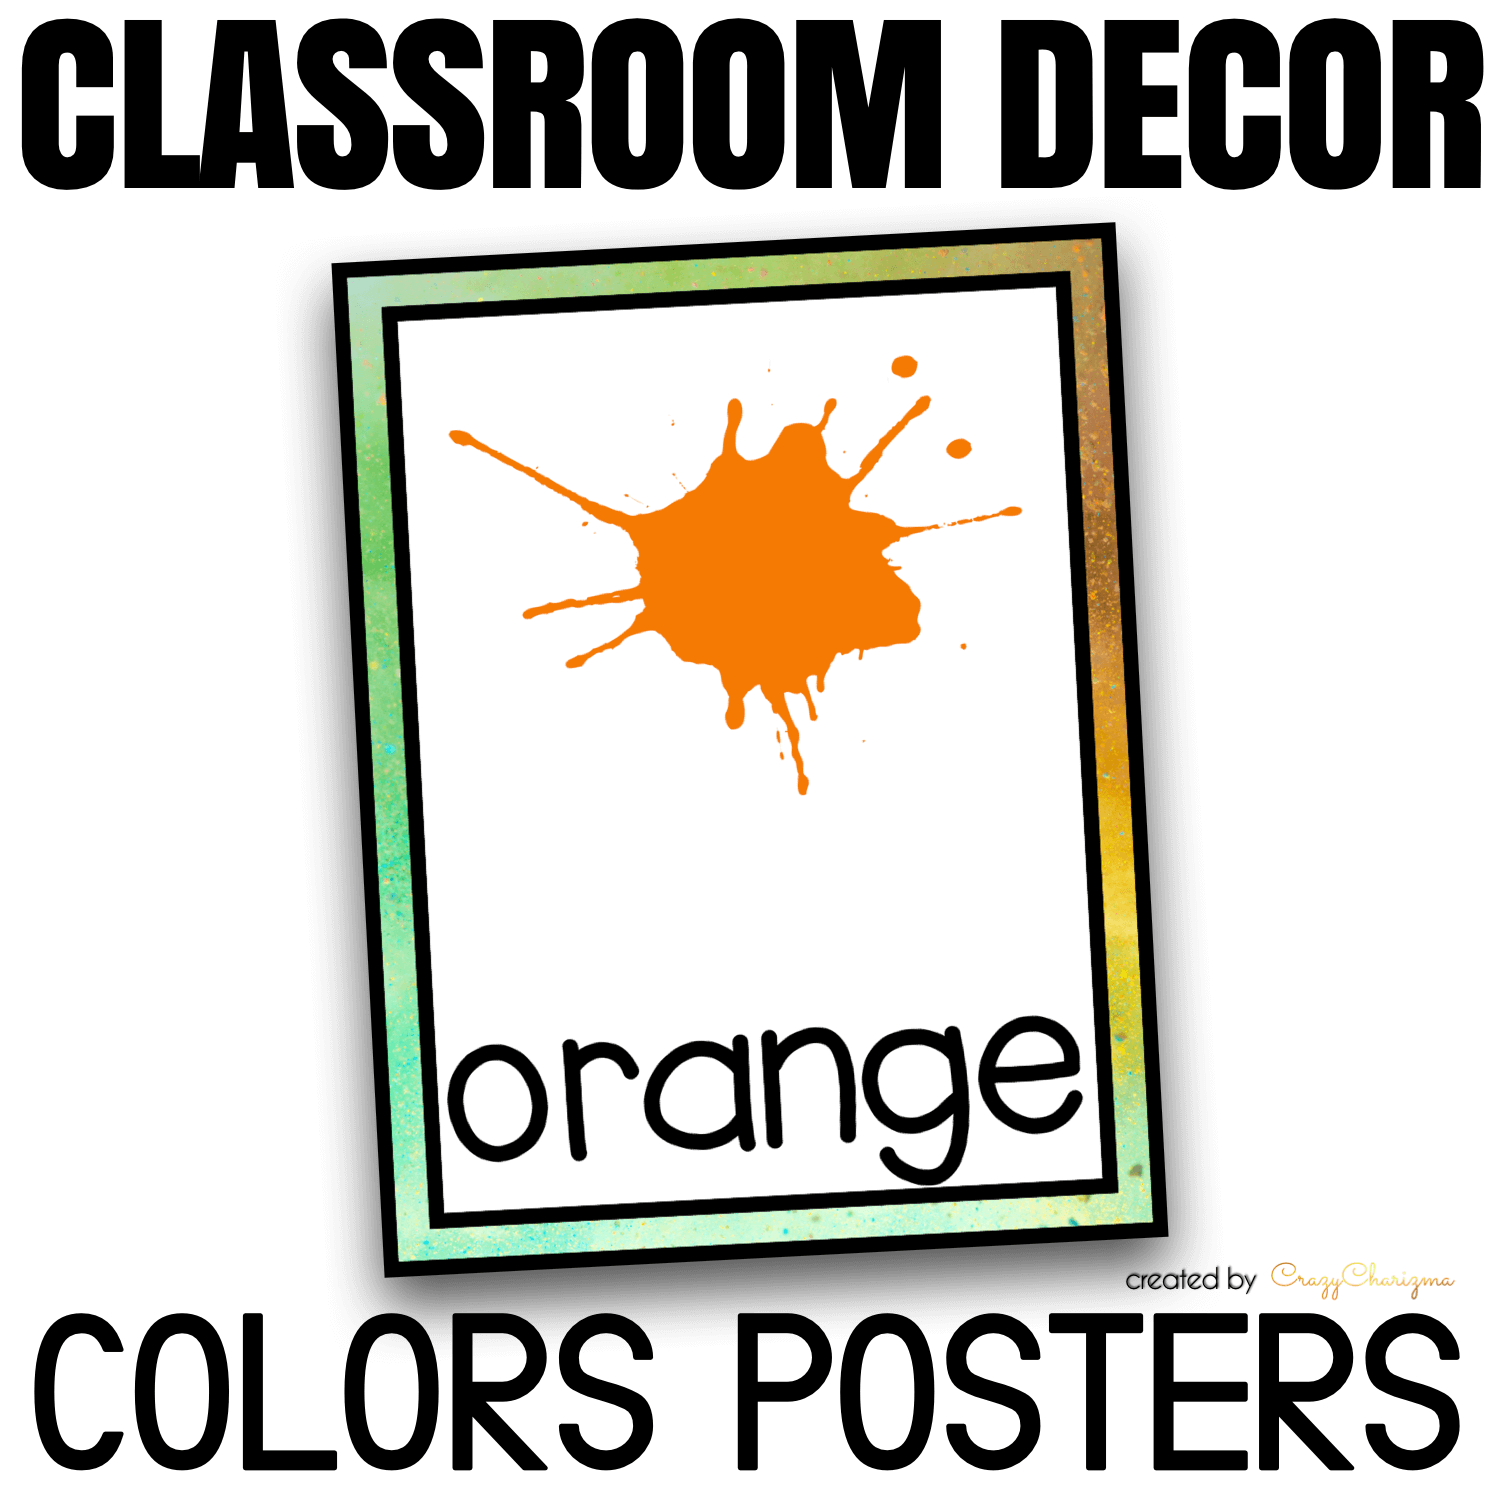 Looking for bright and clear colors posters? Spice your classroom with this visually appealing SPLASH classroom decor!